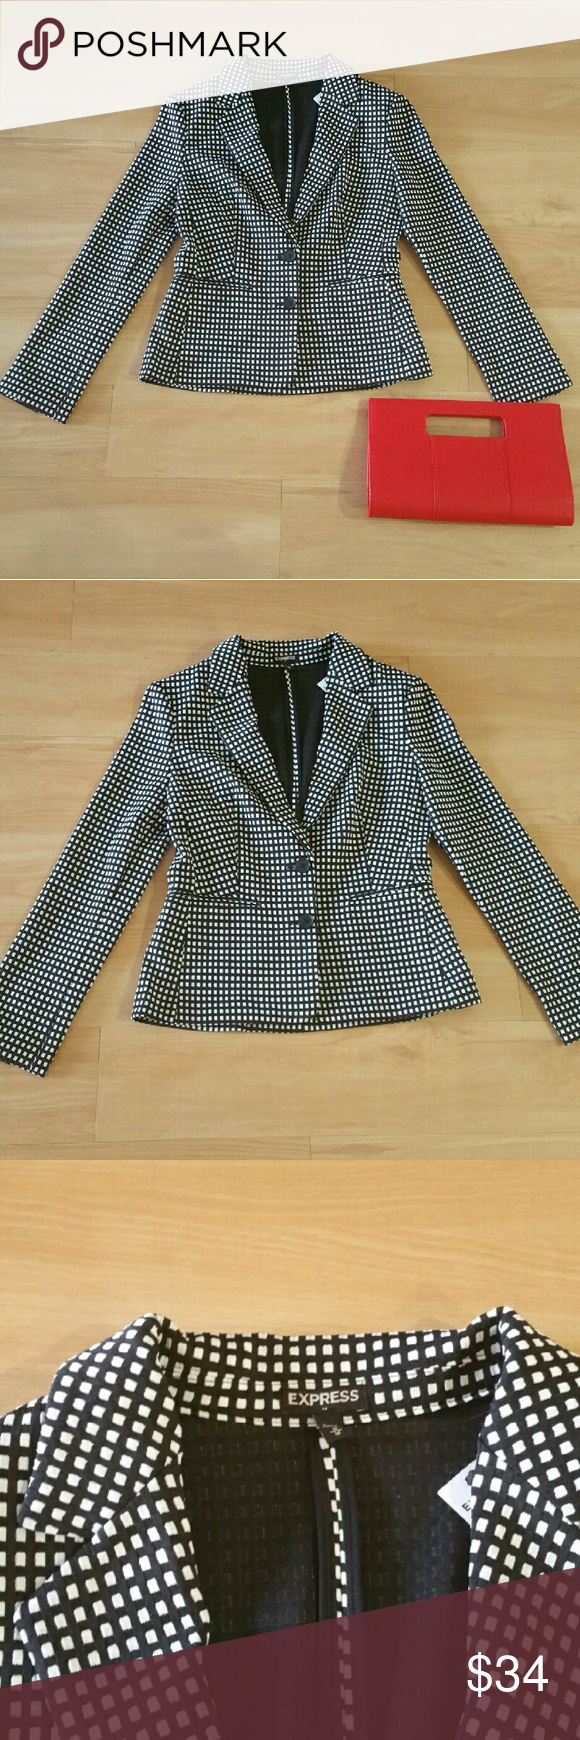 EXPRESS Women's Blazer B/W Print  Suit Jacket V-neckline Pullover styling Ruffled accent around collar, end of sleeves, and mid section Short sleeves Allover multi-color print pattern Hits right below waistline In excellent condition with no stains or tears noted! Gently worn Please note: Only item described in listing included. Other items appearing in picture for decorative purpose only From a pet & smoke free home! Express Jackets & Coats Blazers